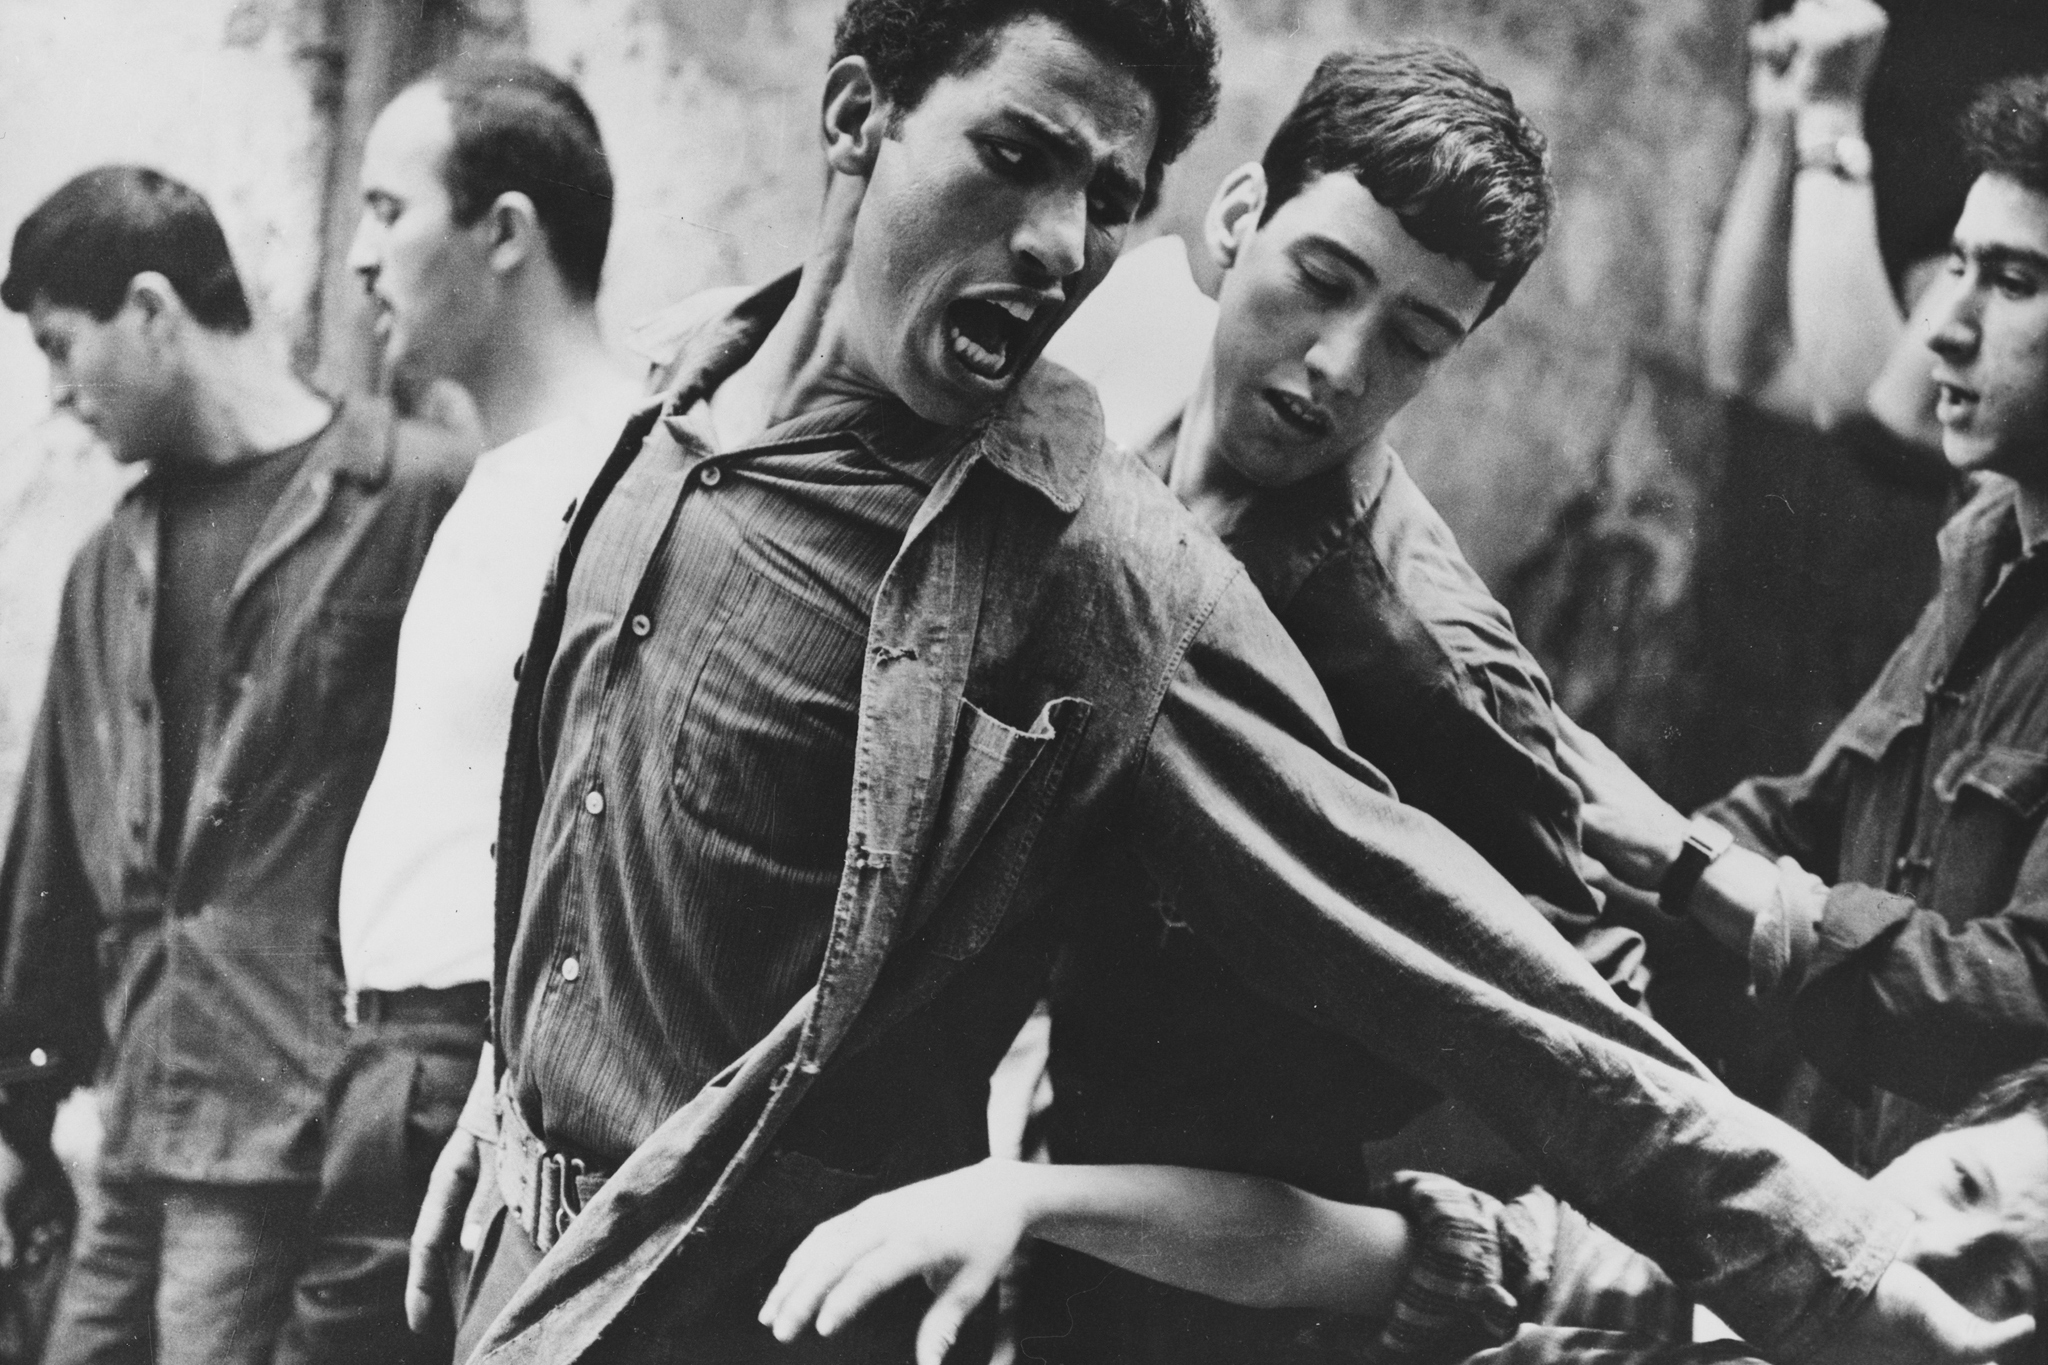 Brahim Haggiag, center, in The Battle of Algiers